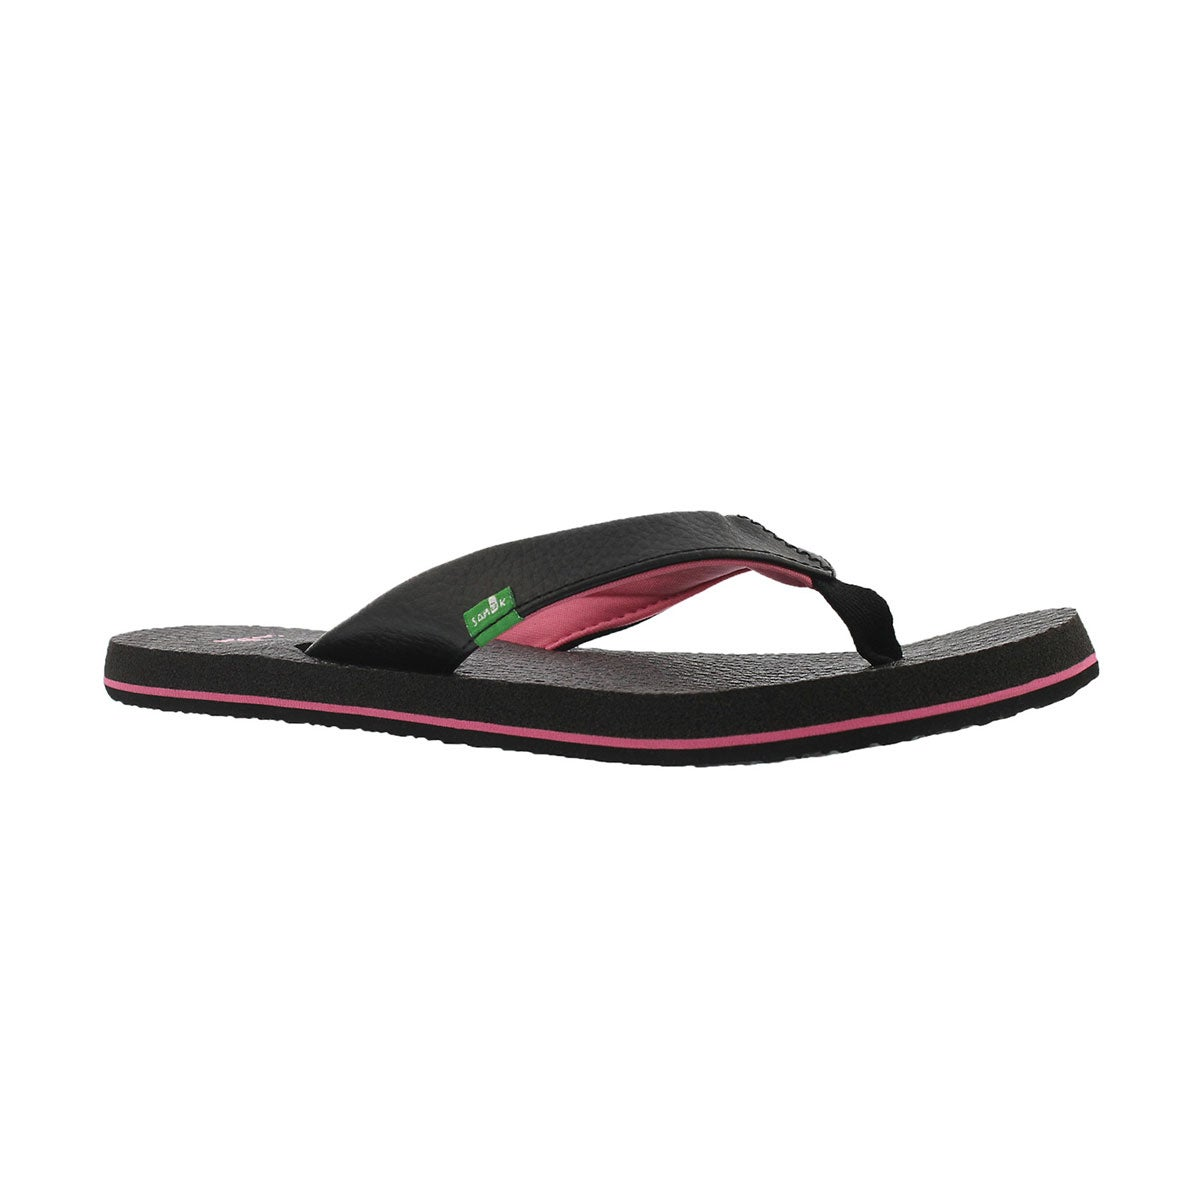 Girls' YOGA MAT black/pink flip flops